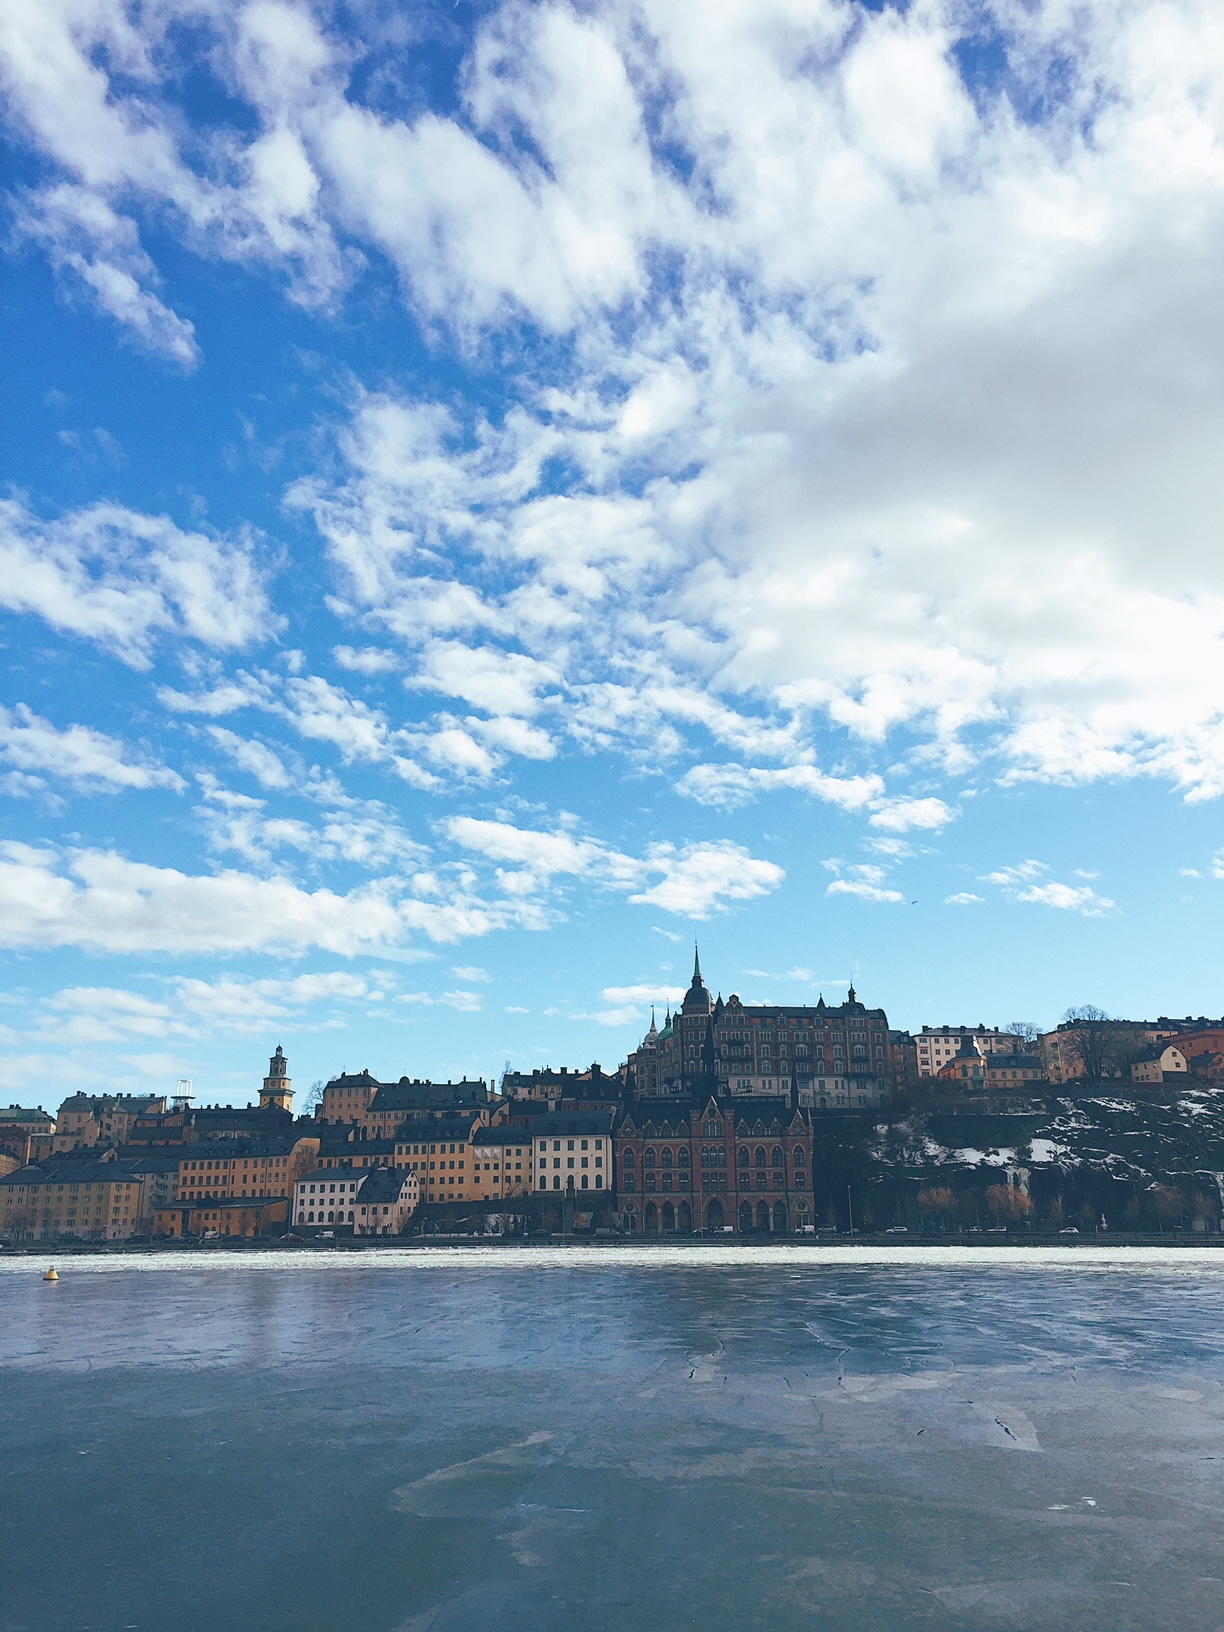 Most Instagrammable spots in Stockholm